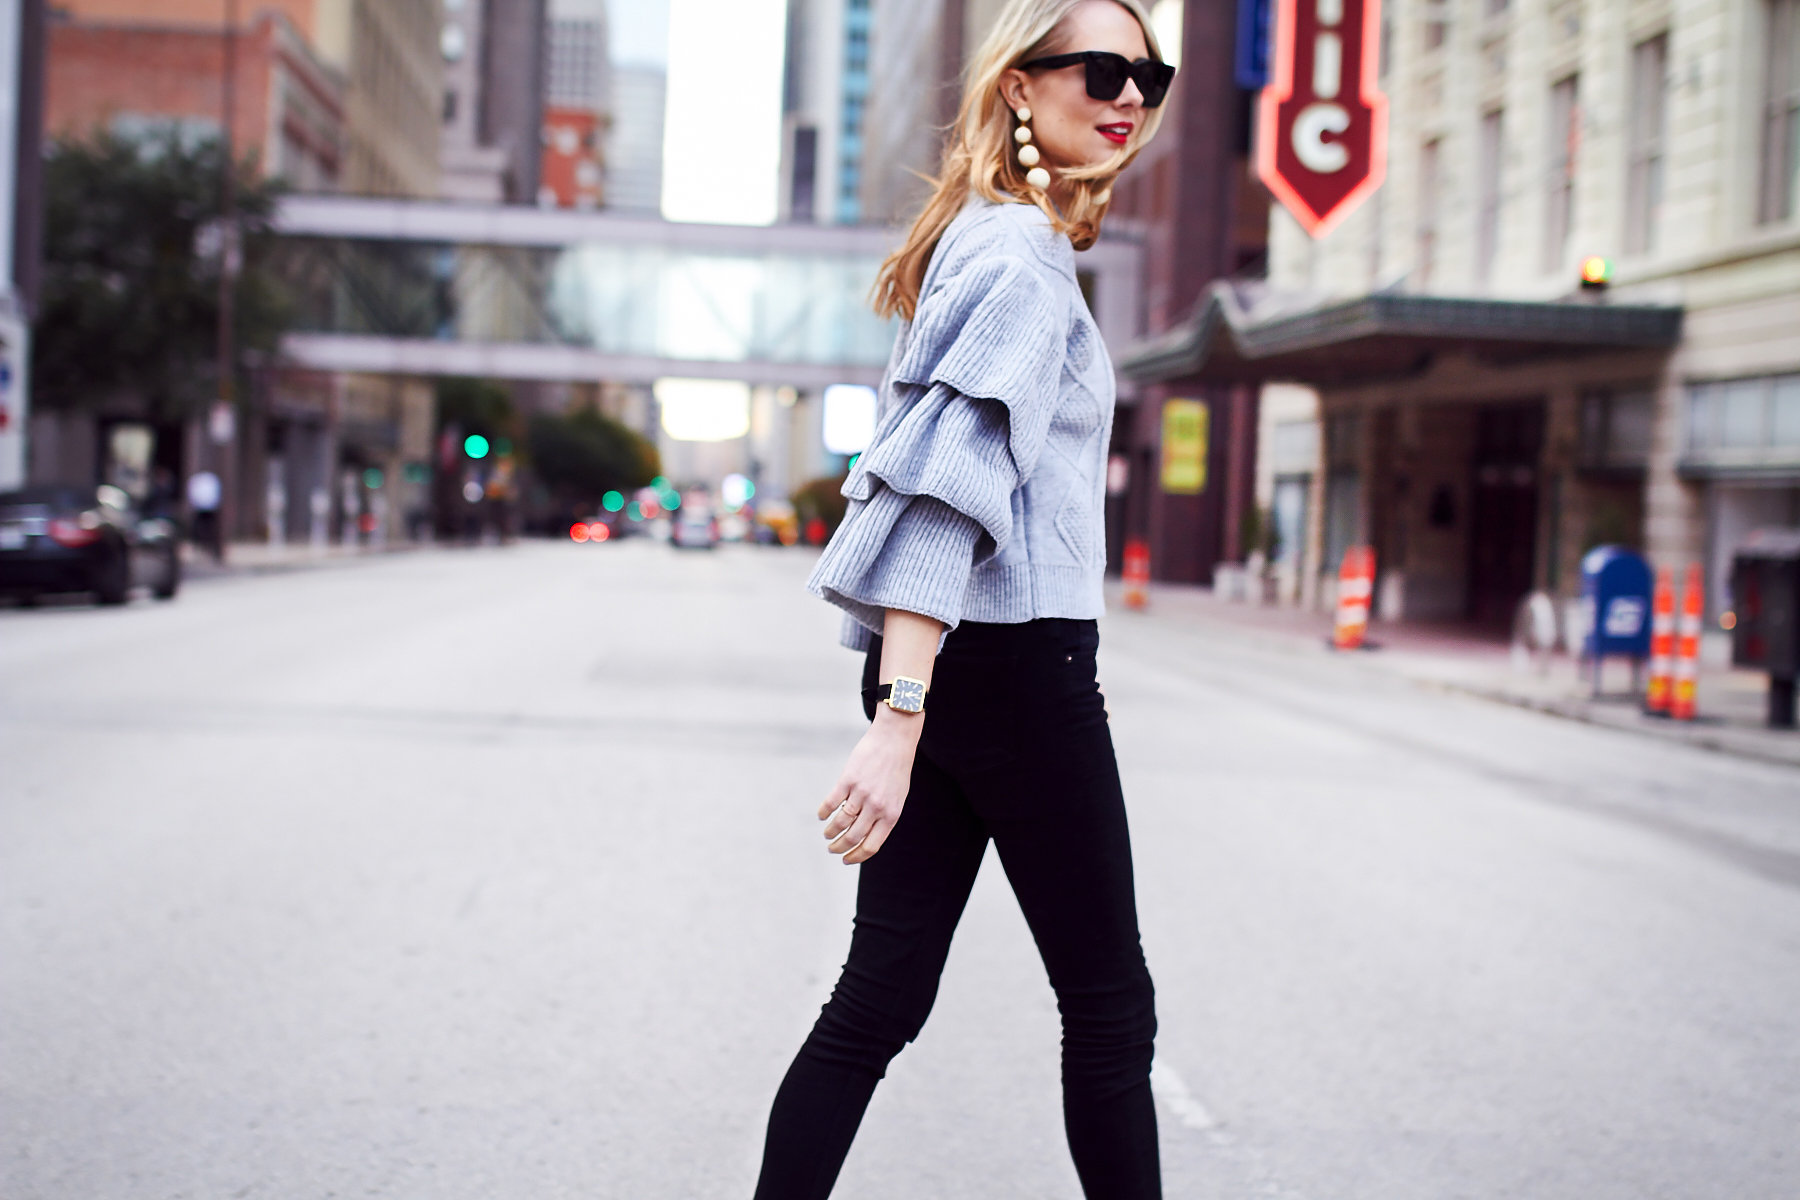 Fall Outfit, Winter Outfit, Grey Ruffle Sleeve Sweater, Black Skinny Jeans, BonBon Earrings, Black Celine Sunglasses, Red Lipstick